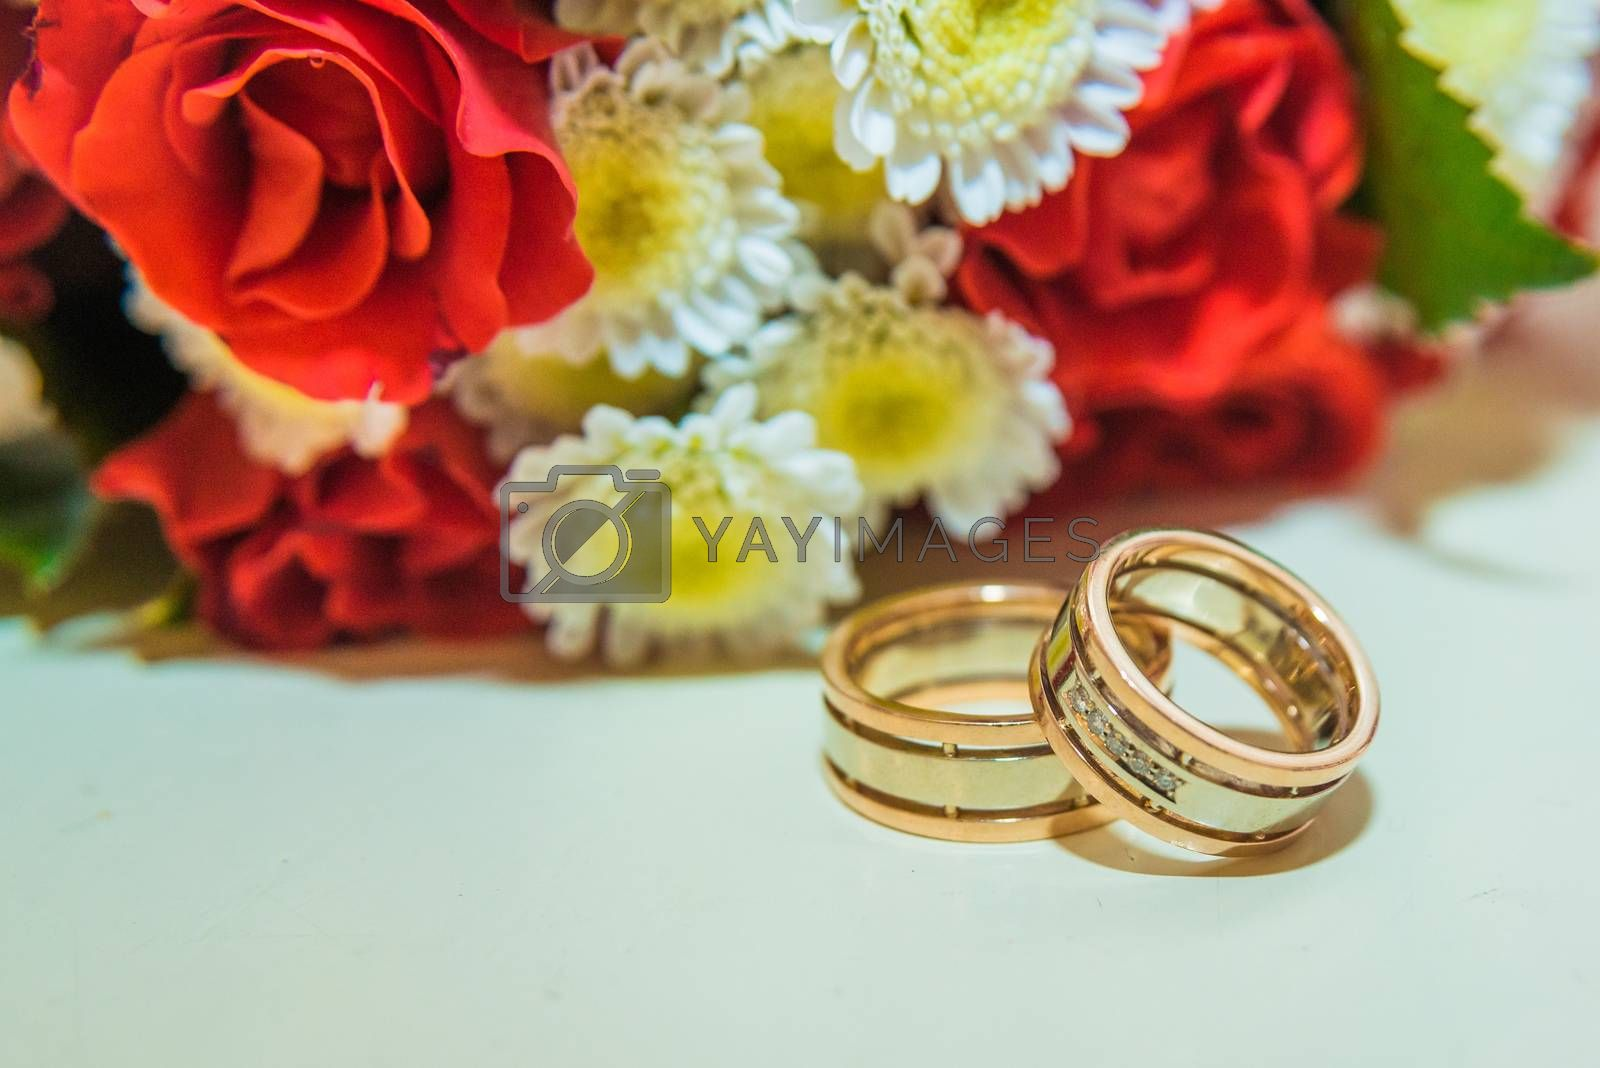 Two gold wedding rings lie and a bouquet of red roses on the table